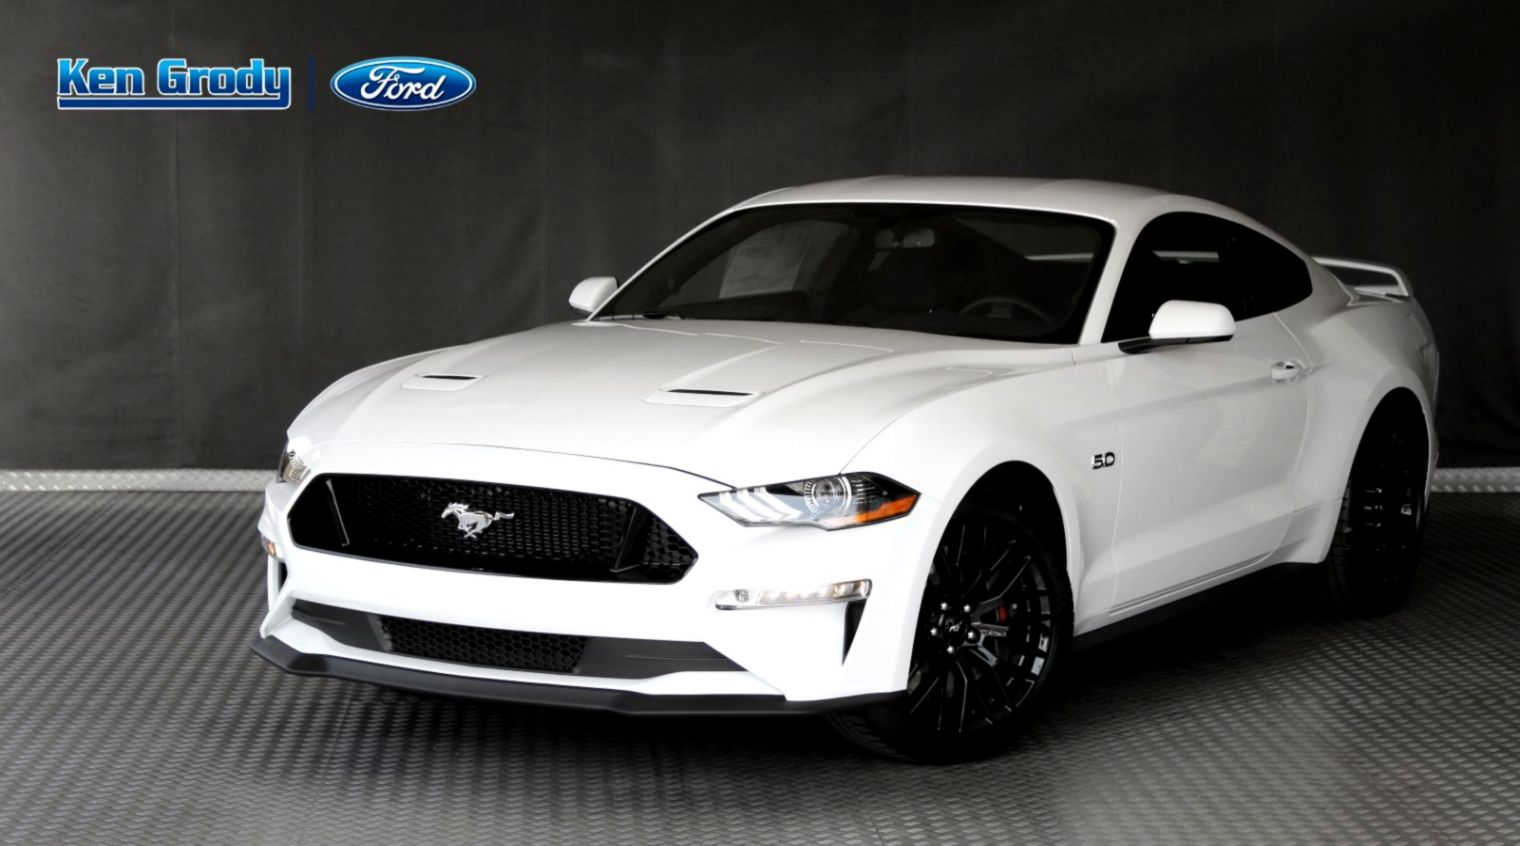 New 2019 ford mustang gt 2dr car in buena park 15000 ken grody